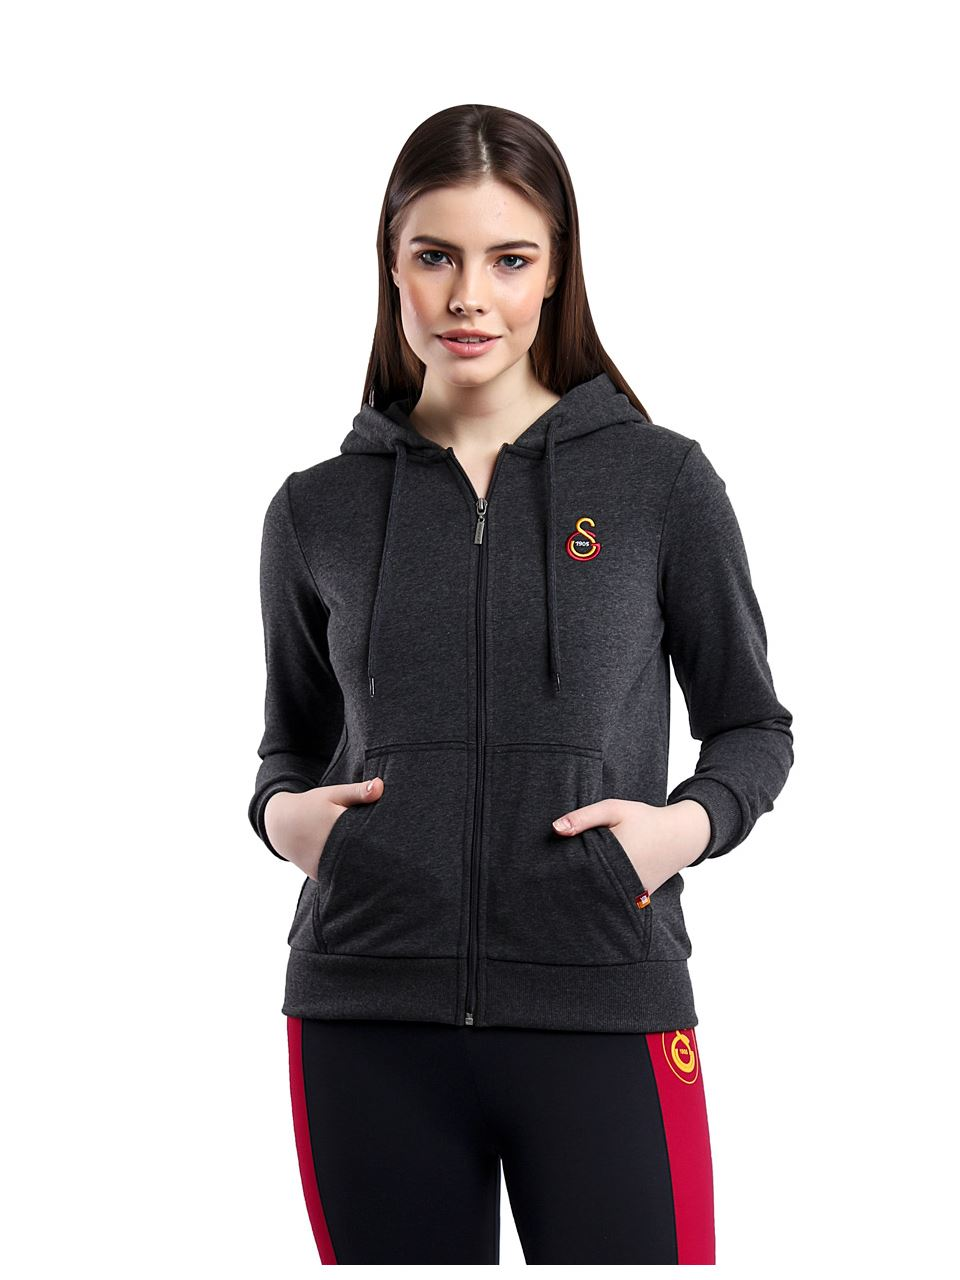 GALATASARAY KADIN  BASIC SWEATSHİRT K201218